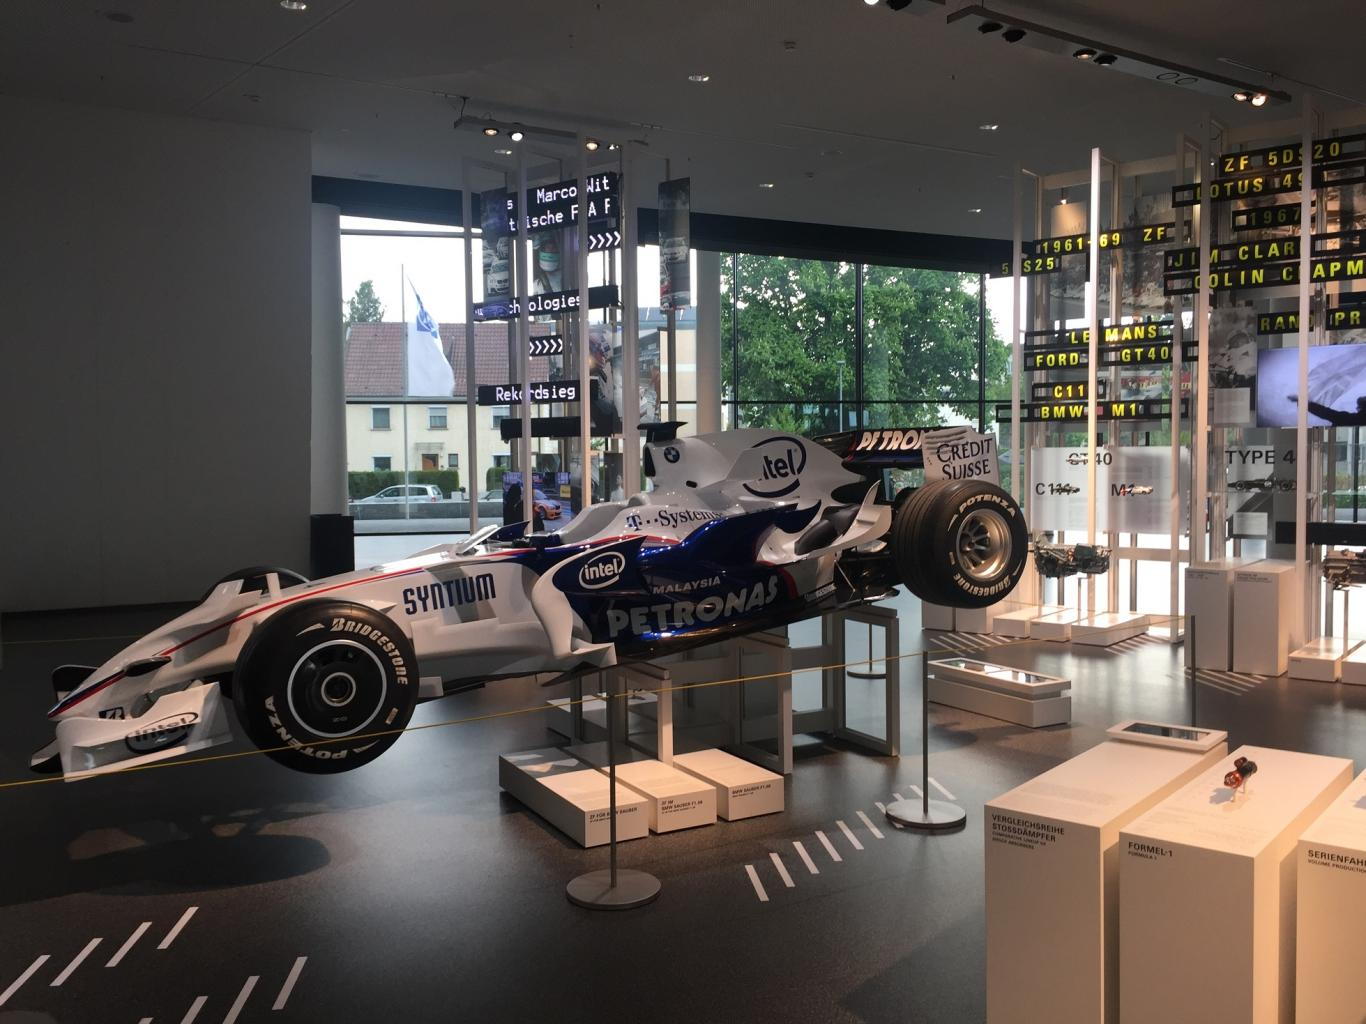 ZF 5DS25-2 on display-zf01-jpg